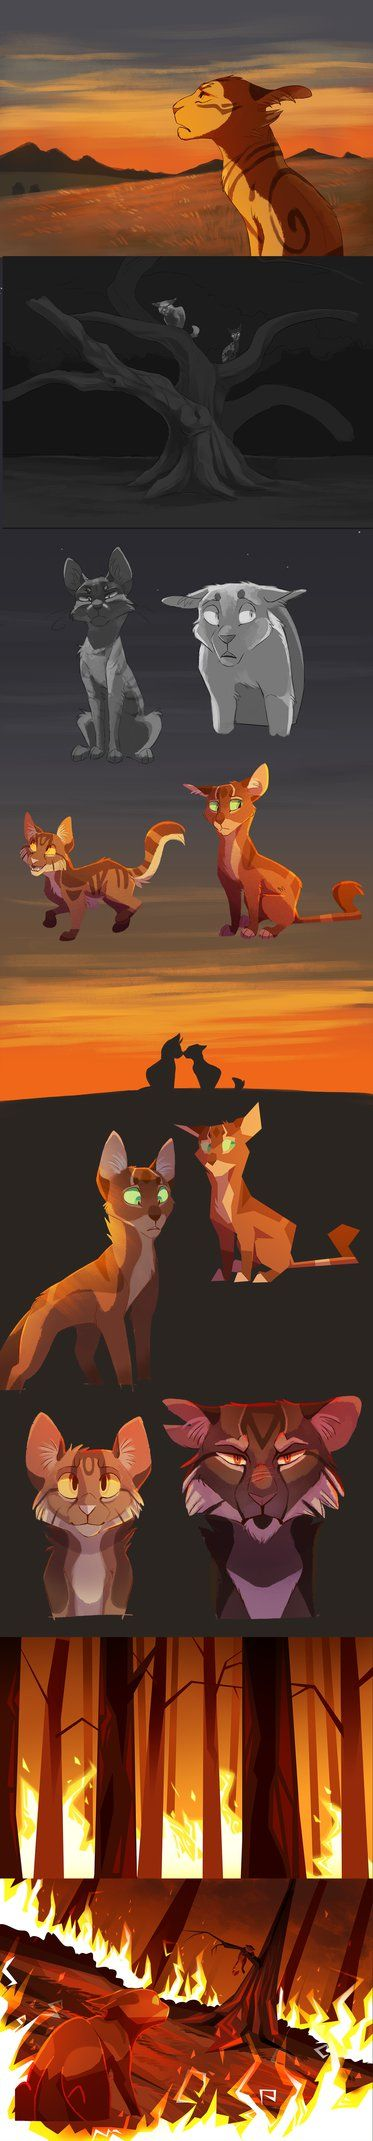 Fanart of my favourite book series whilst growing up, Warrior Cats by Erin Hunter.